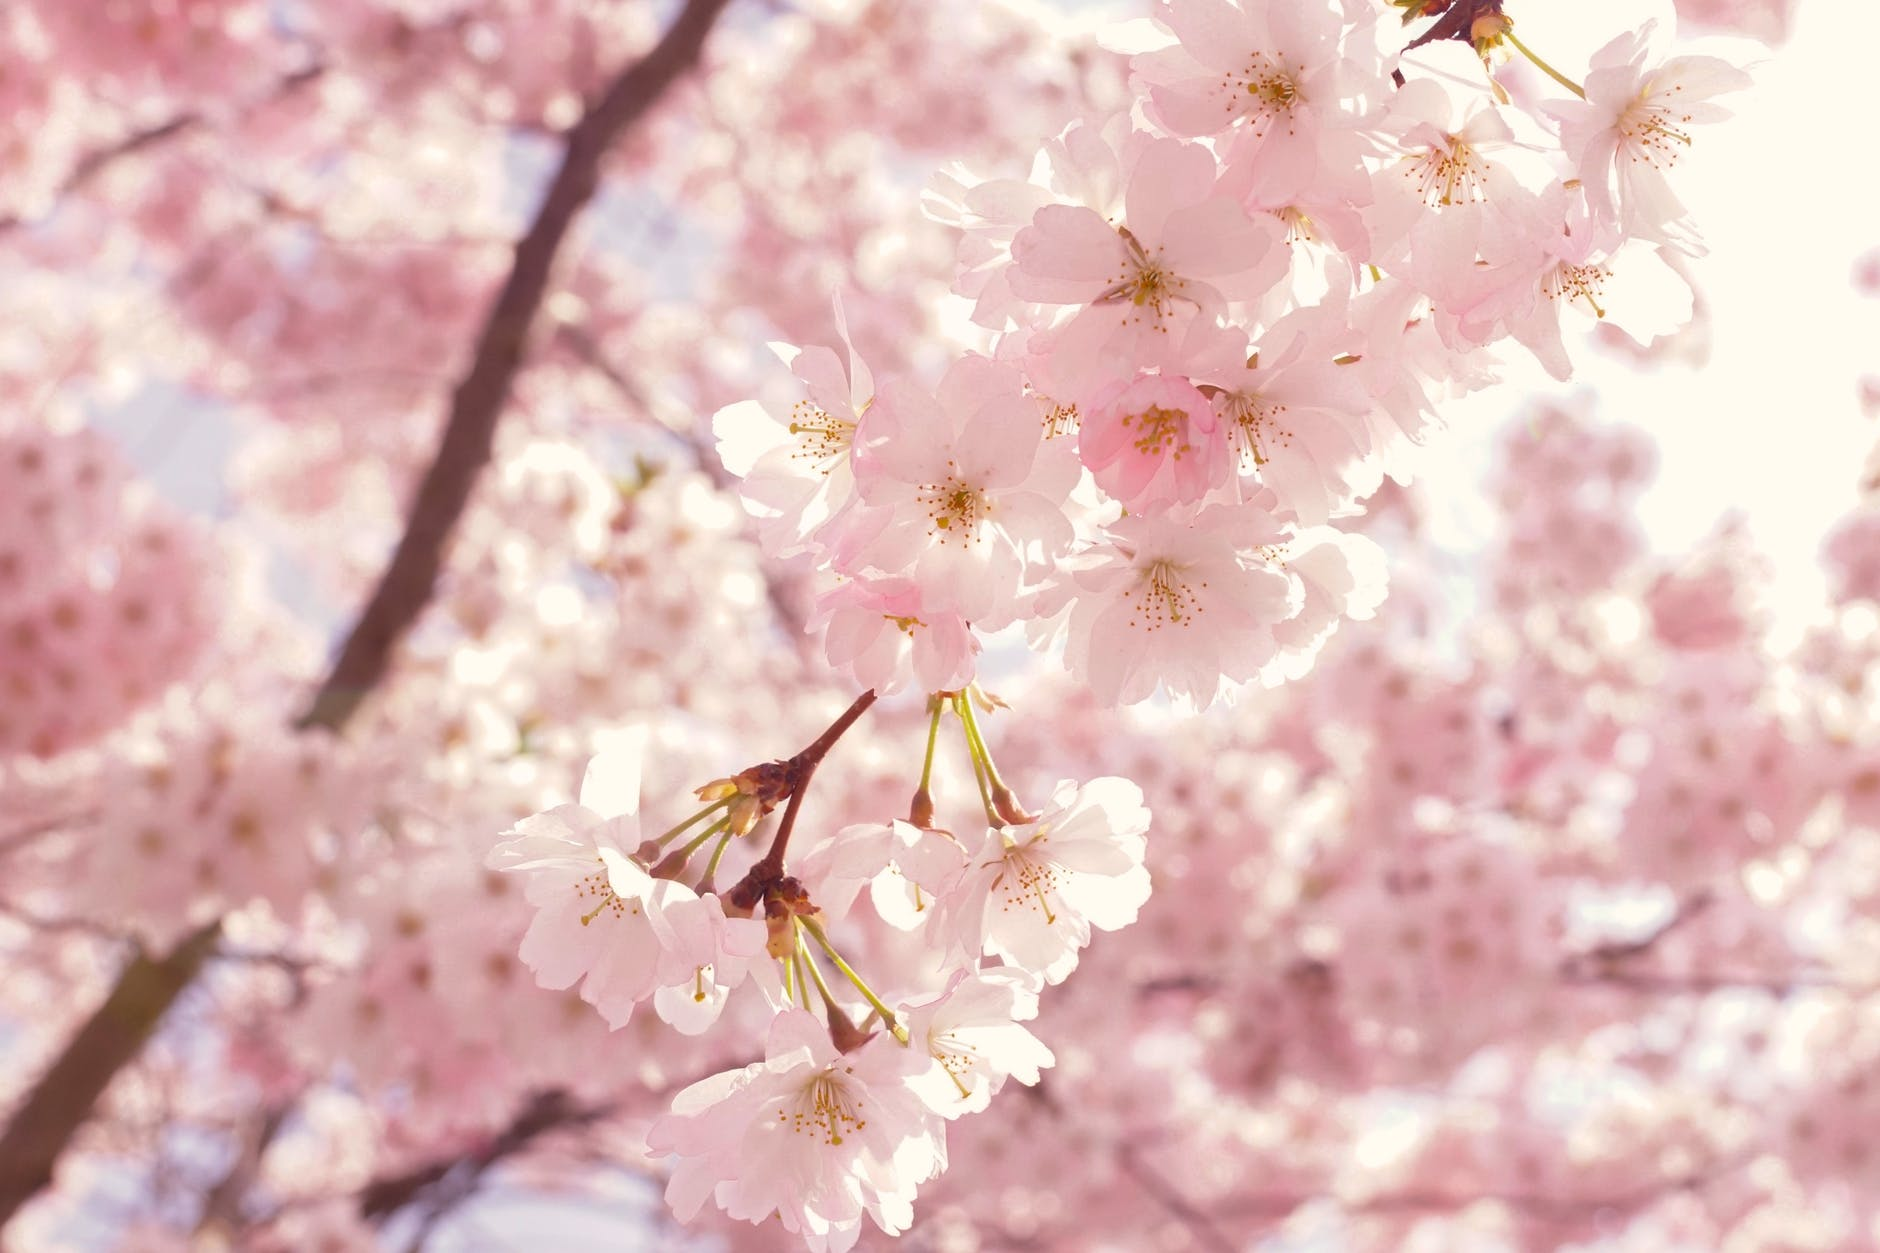 selective focus photography of pink cherry blossom flowers